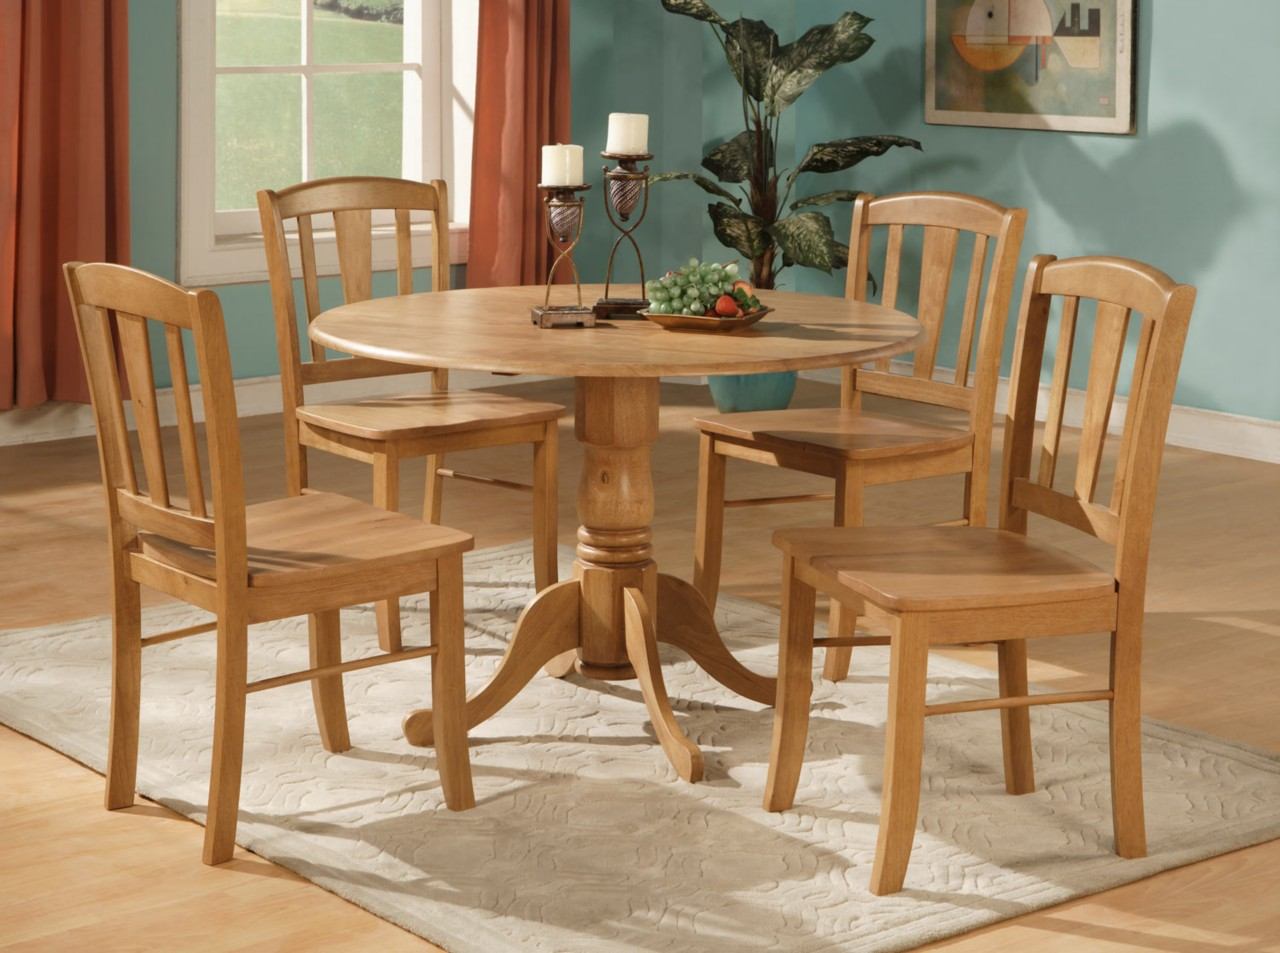 5pc round dinette kitchen dining set table and 4 chairs ebay for Kitchen set table and chairs